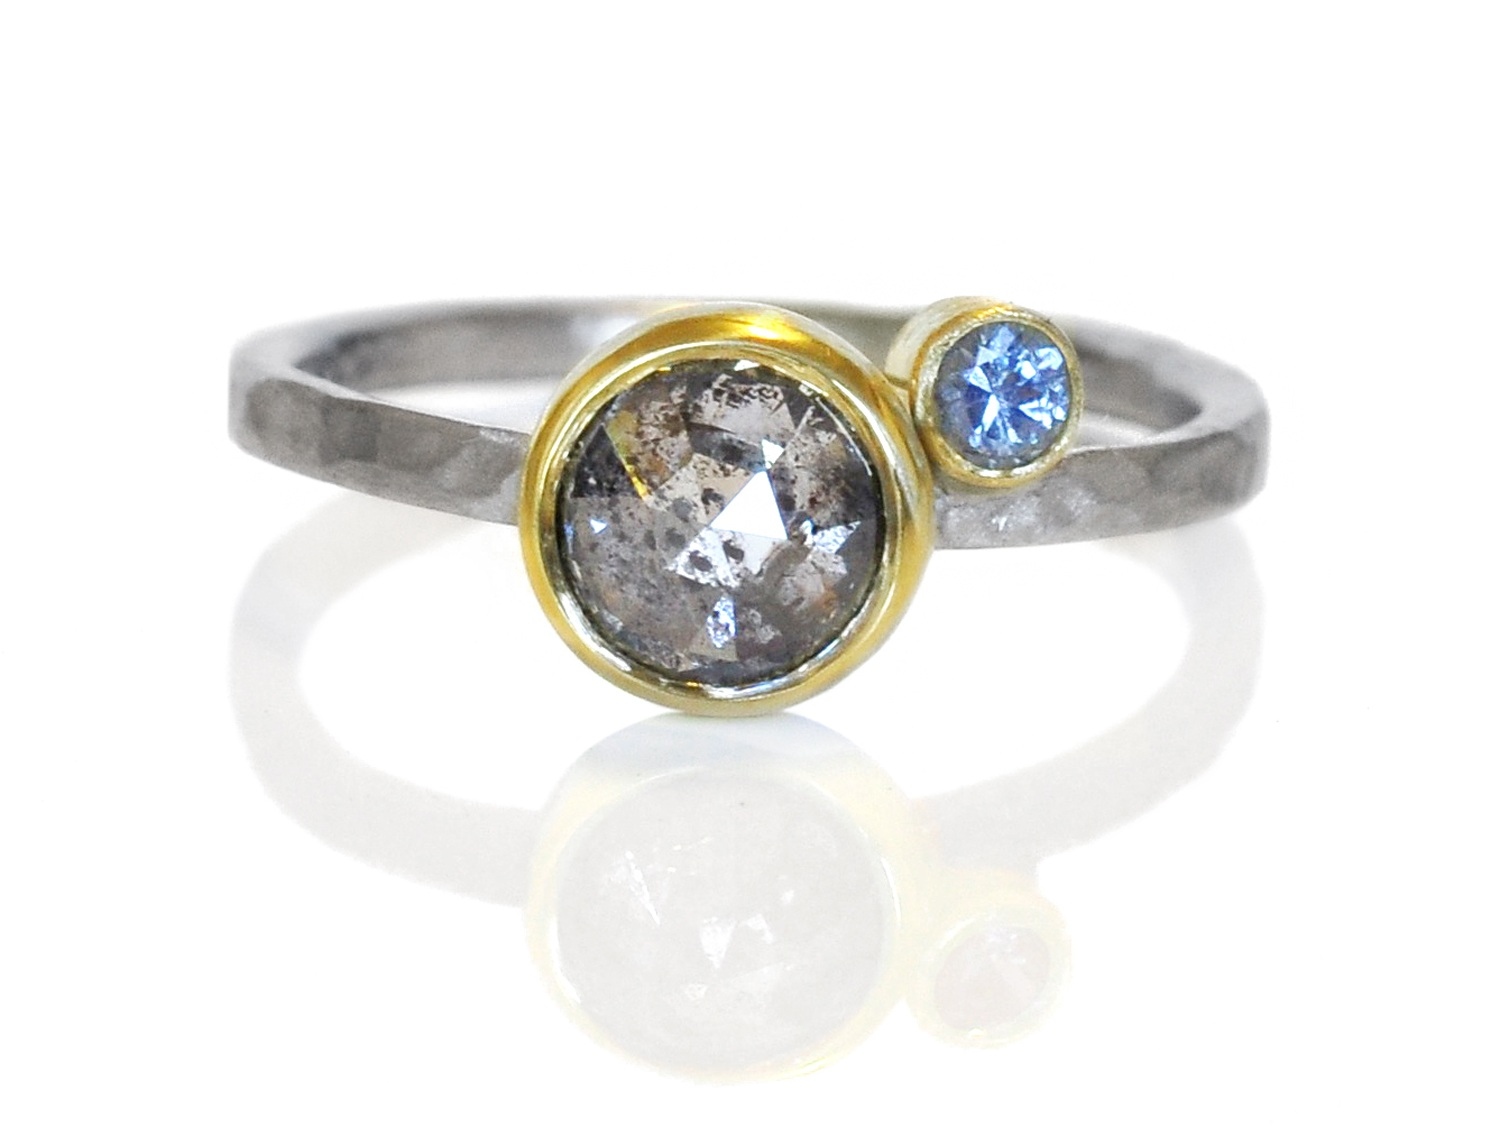 Congratulations Ari and Zuzanna! I love the little bright blue sapphire buddy as compliment to the amazing universe of sparkling inclusions inside this salt and pepper diamond.